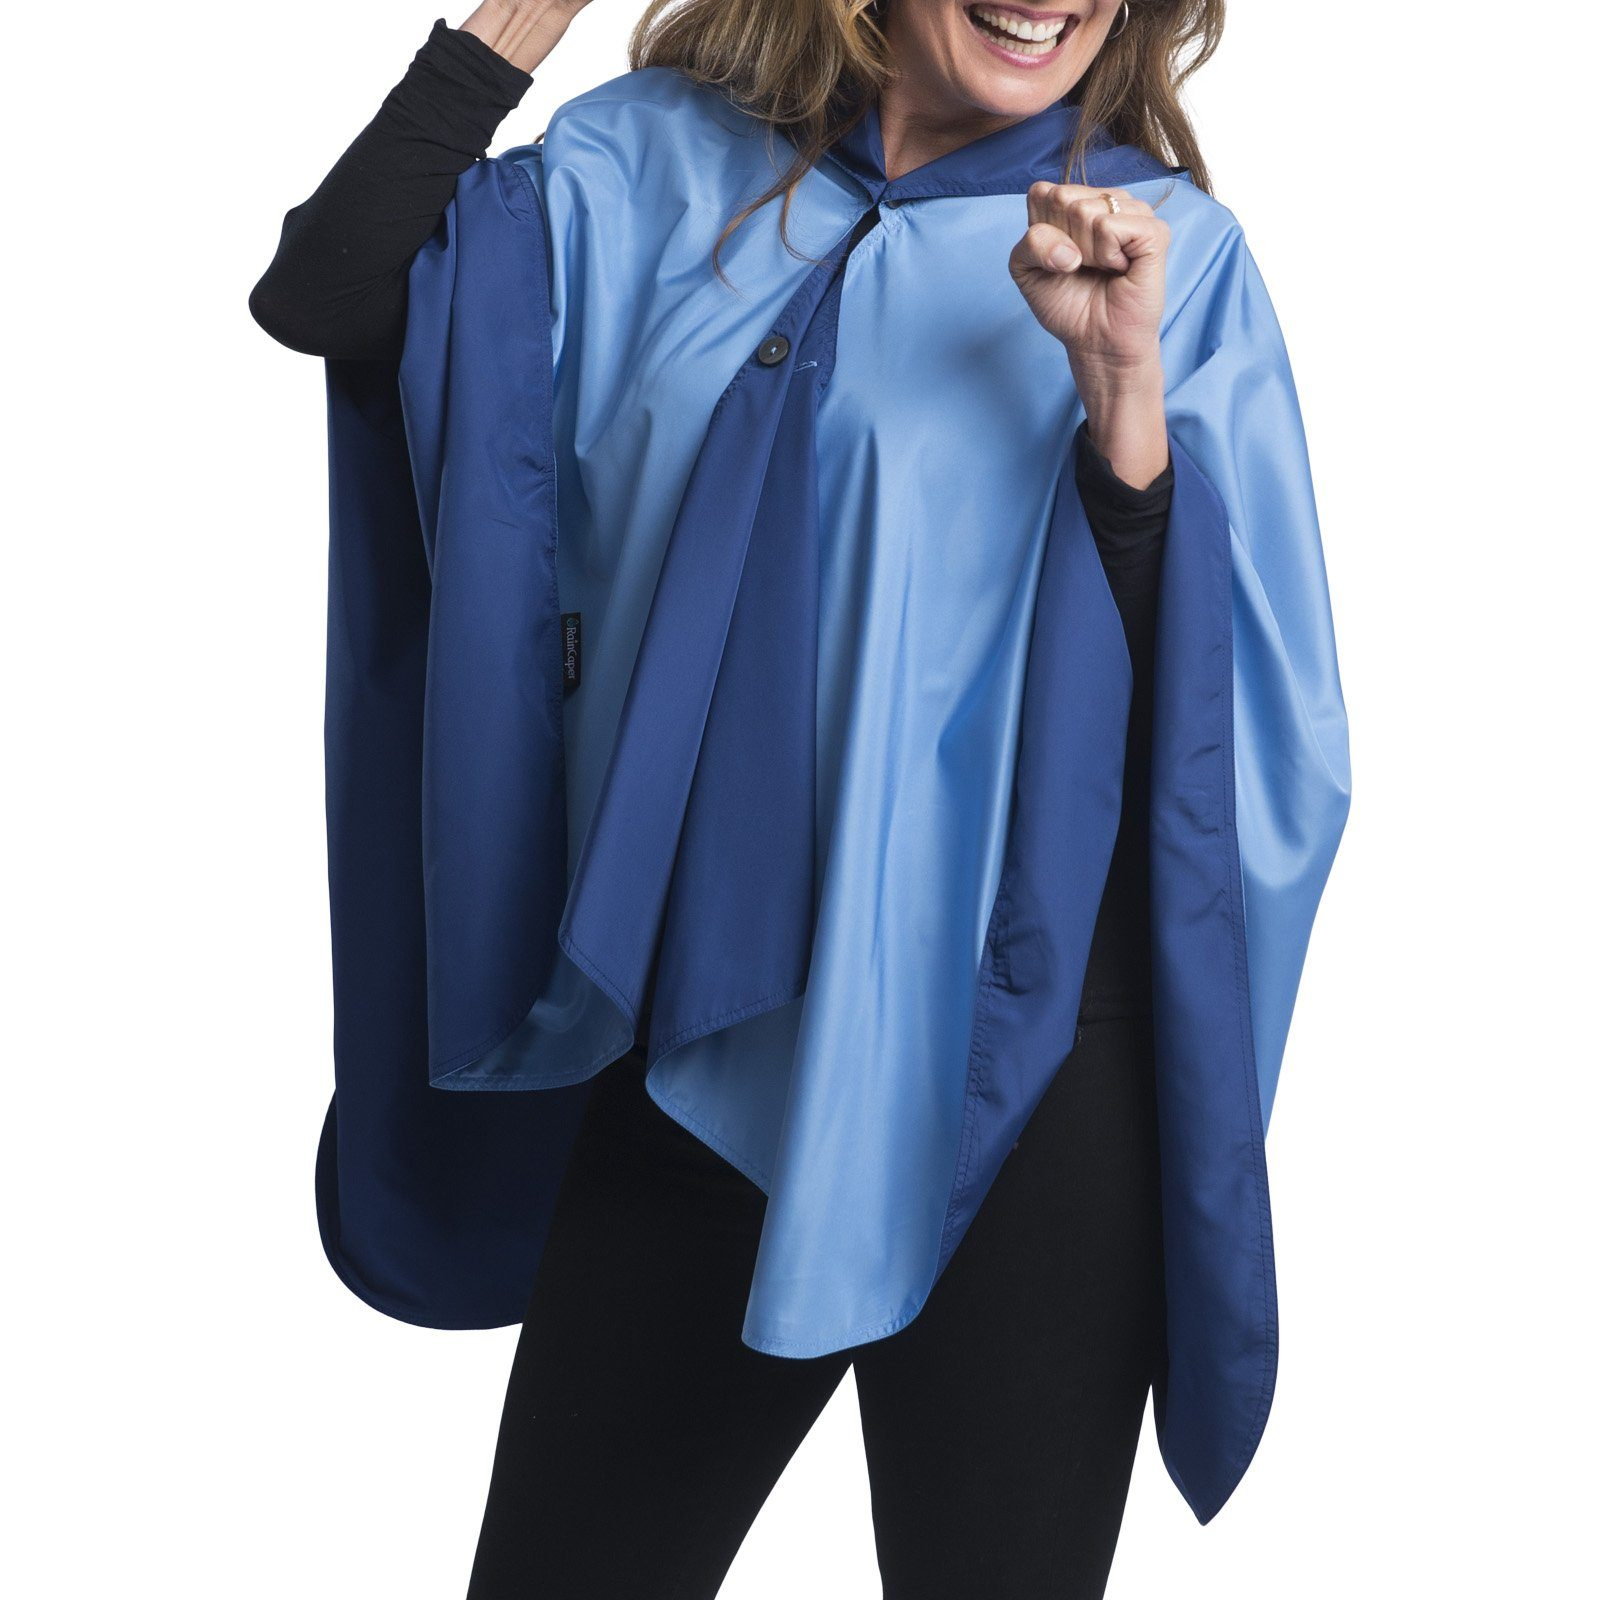 Woman wearing a Navy & Carolina Blue Wind & Rainproof Sports & Cheer Cape with the Carolina Blue side out, revealing the Navy print at the lapels,necklines and cuffs